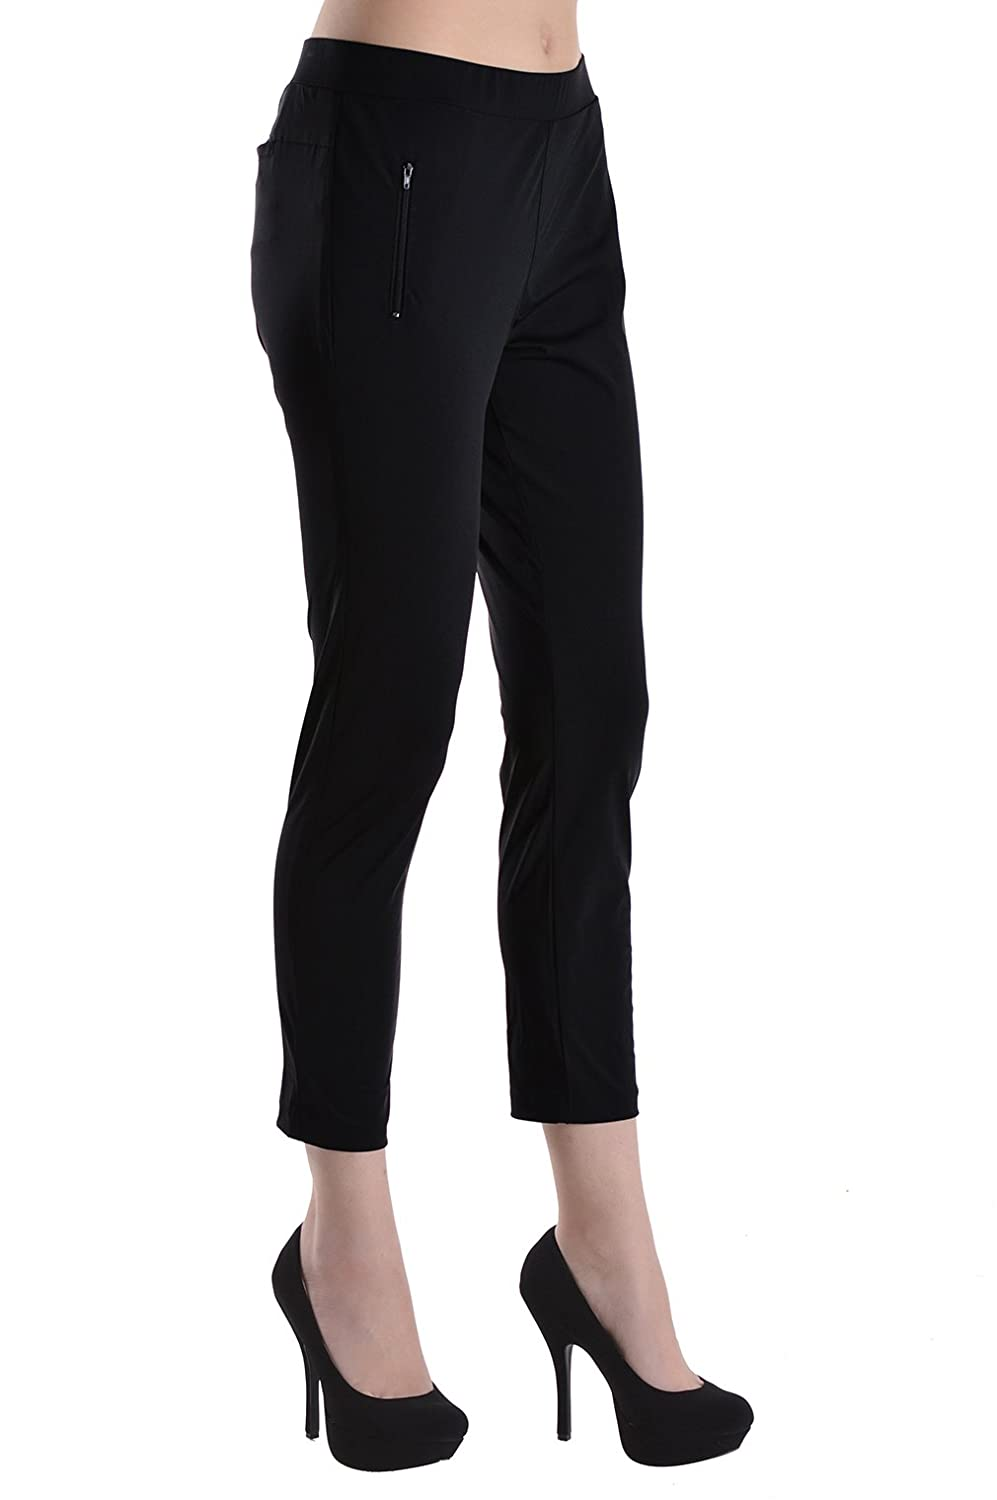 !It Collective Women's Stretch Slim Pants Trousers